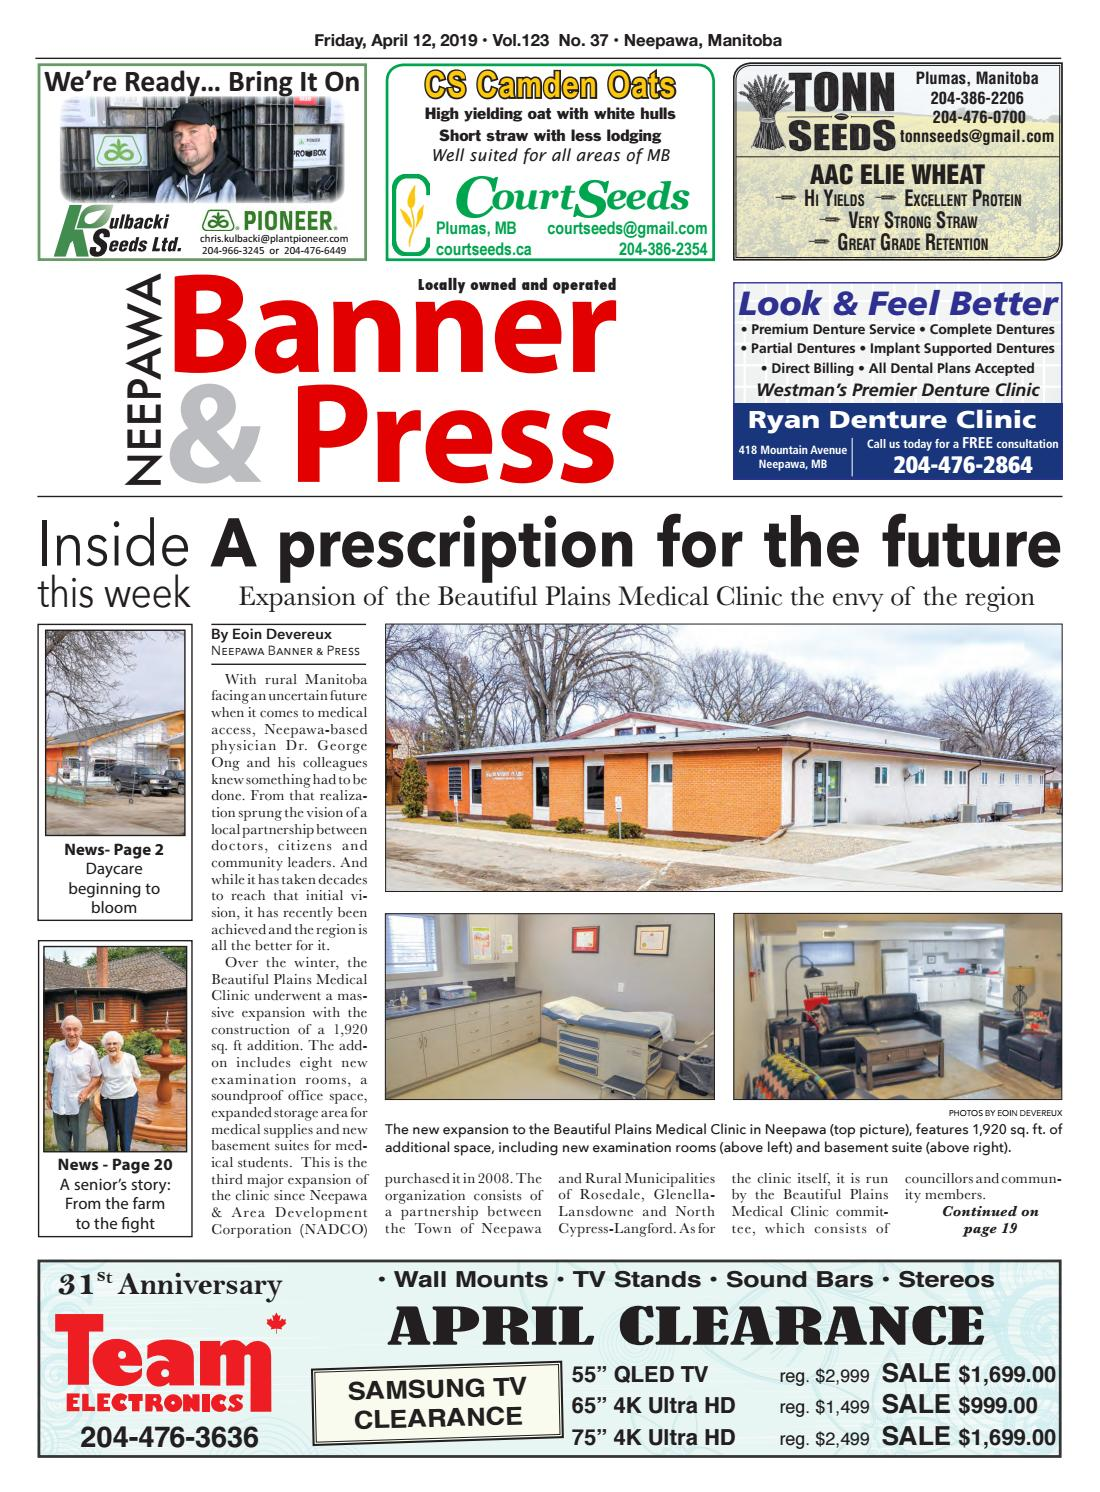 Friday, April 12, 2019 Neepawa Banner & Press by Neepawa